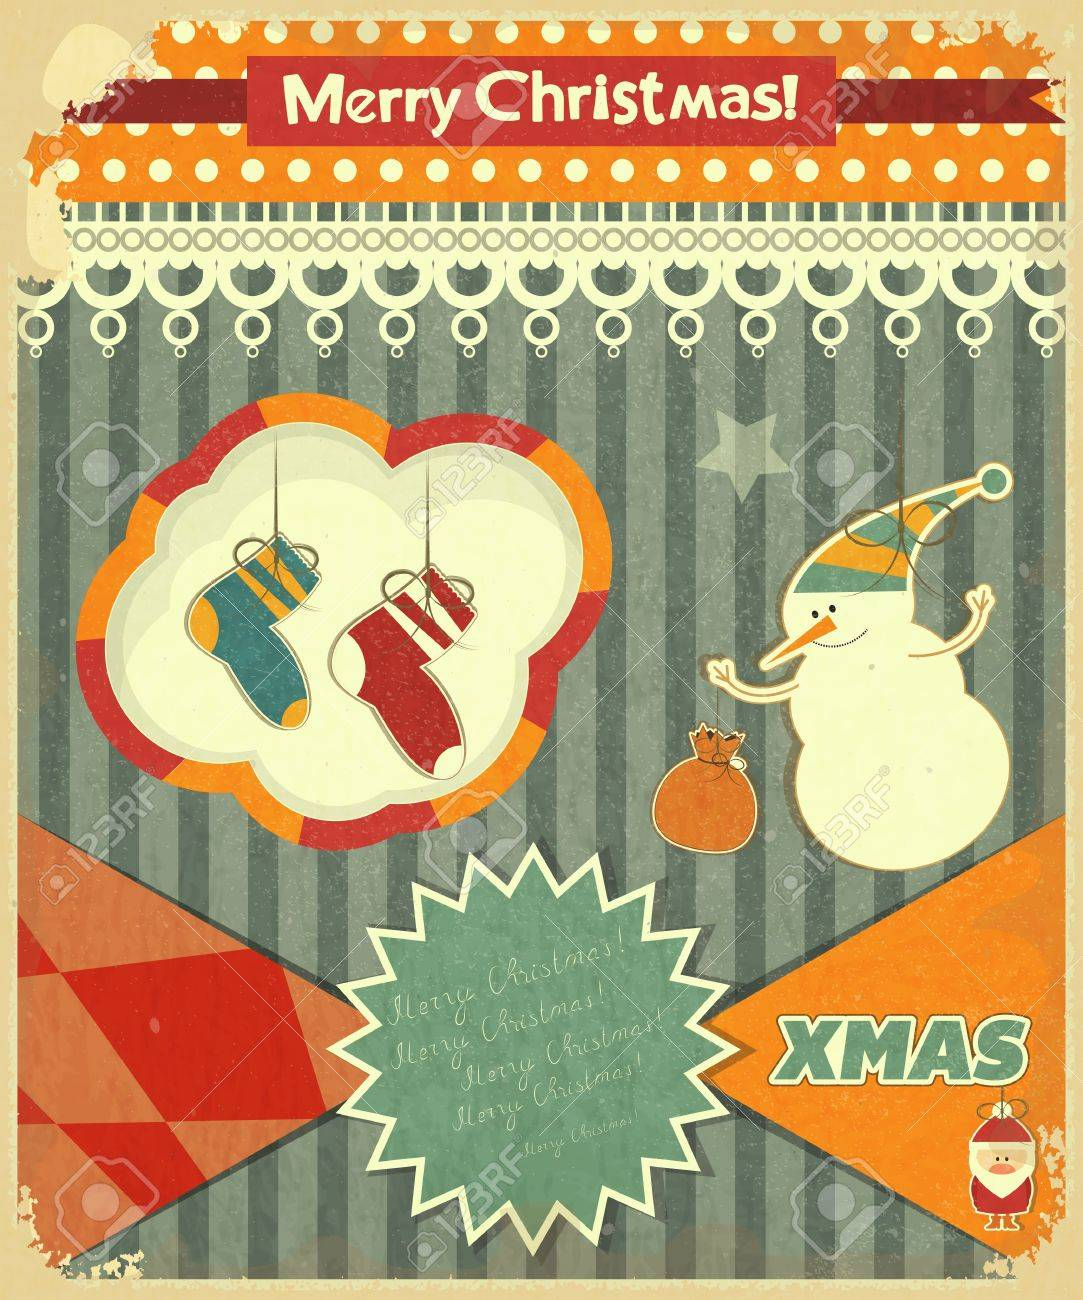 Old Christmas postcard with snowman and Christmas socks on a Vintage background. Vector illustration. Stock Vector - 15966891